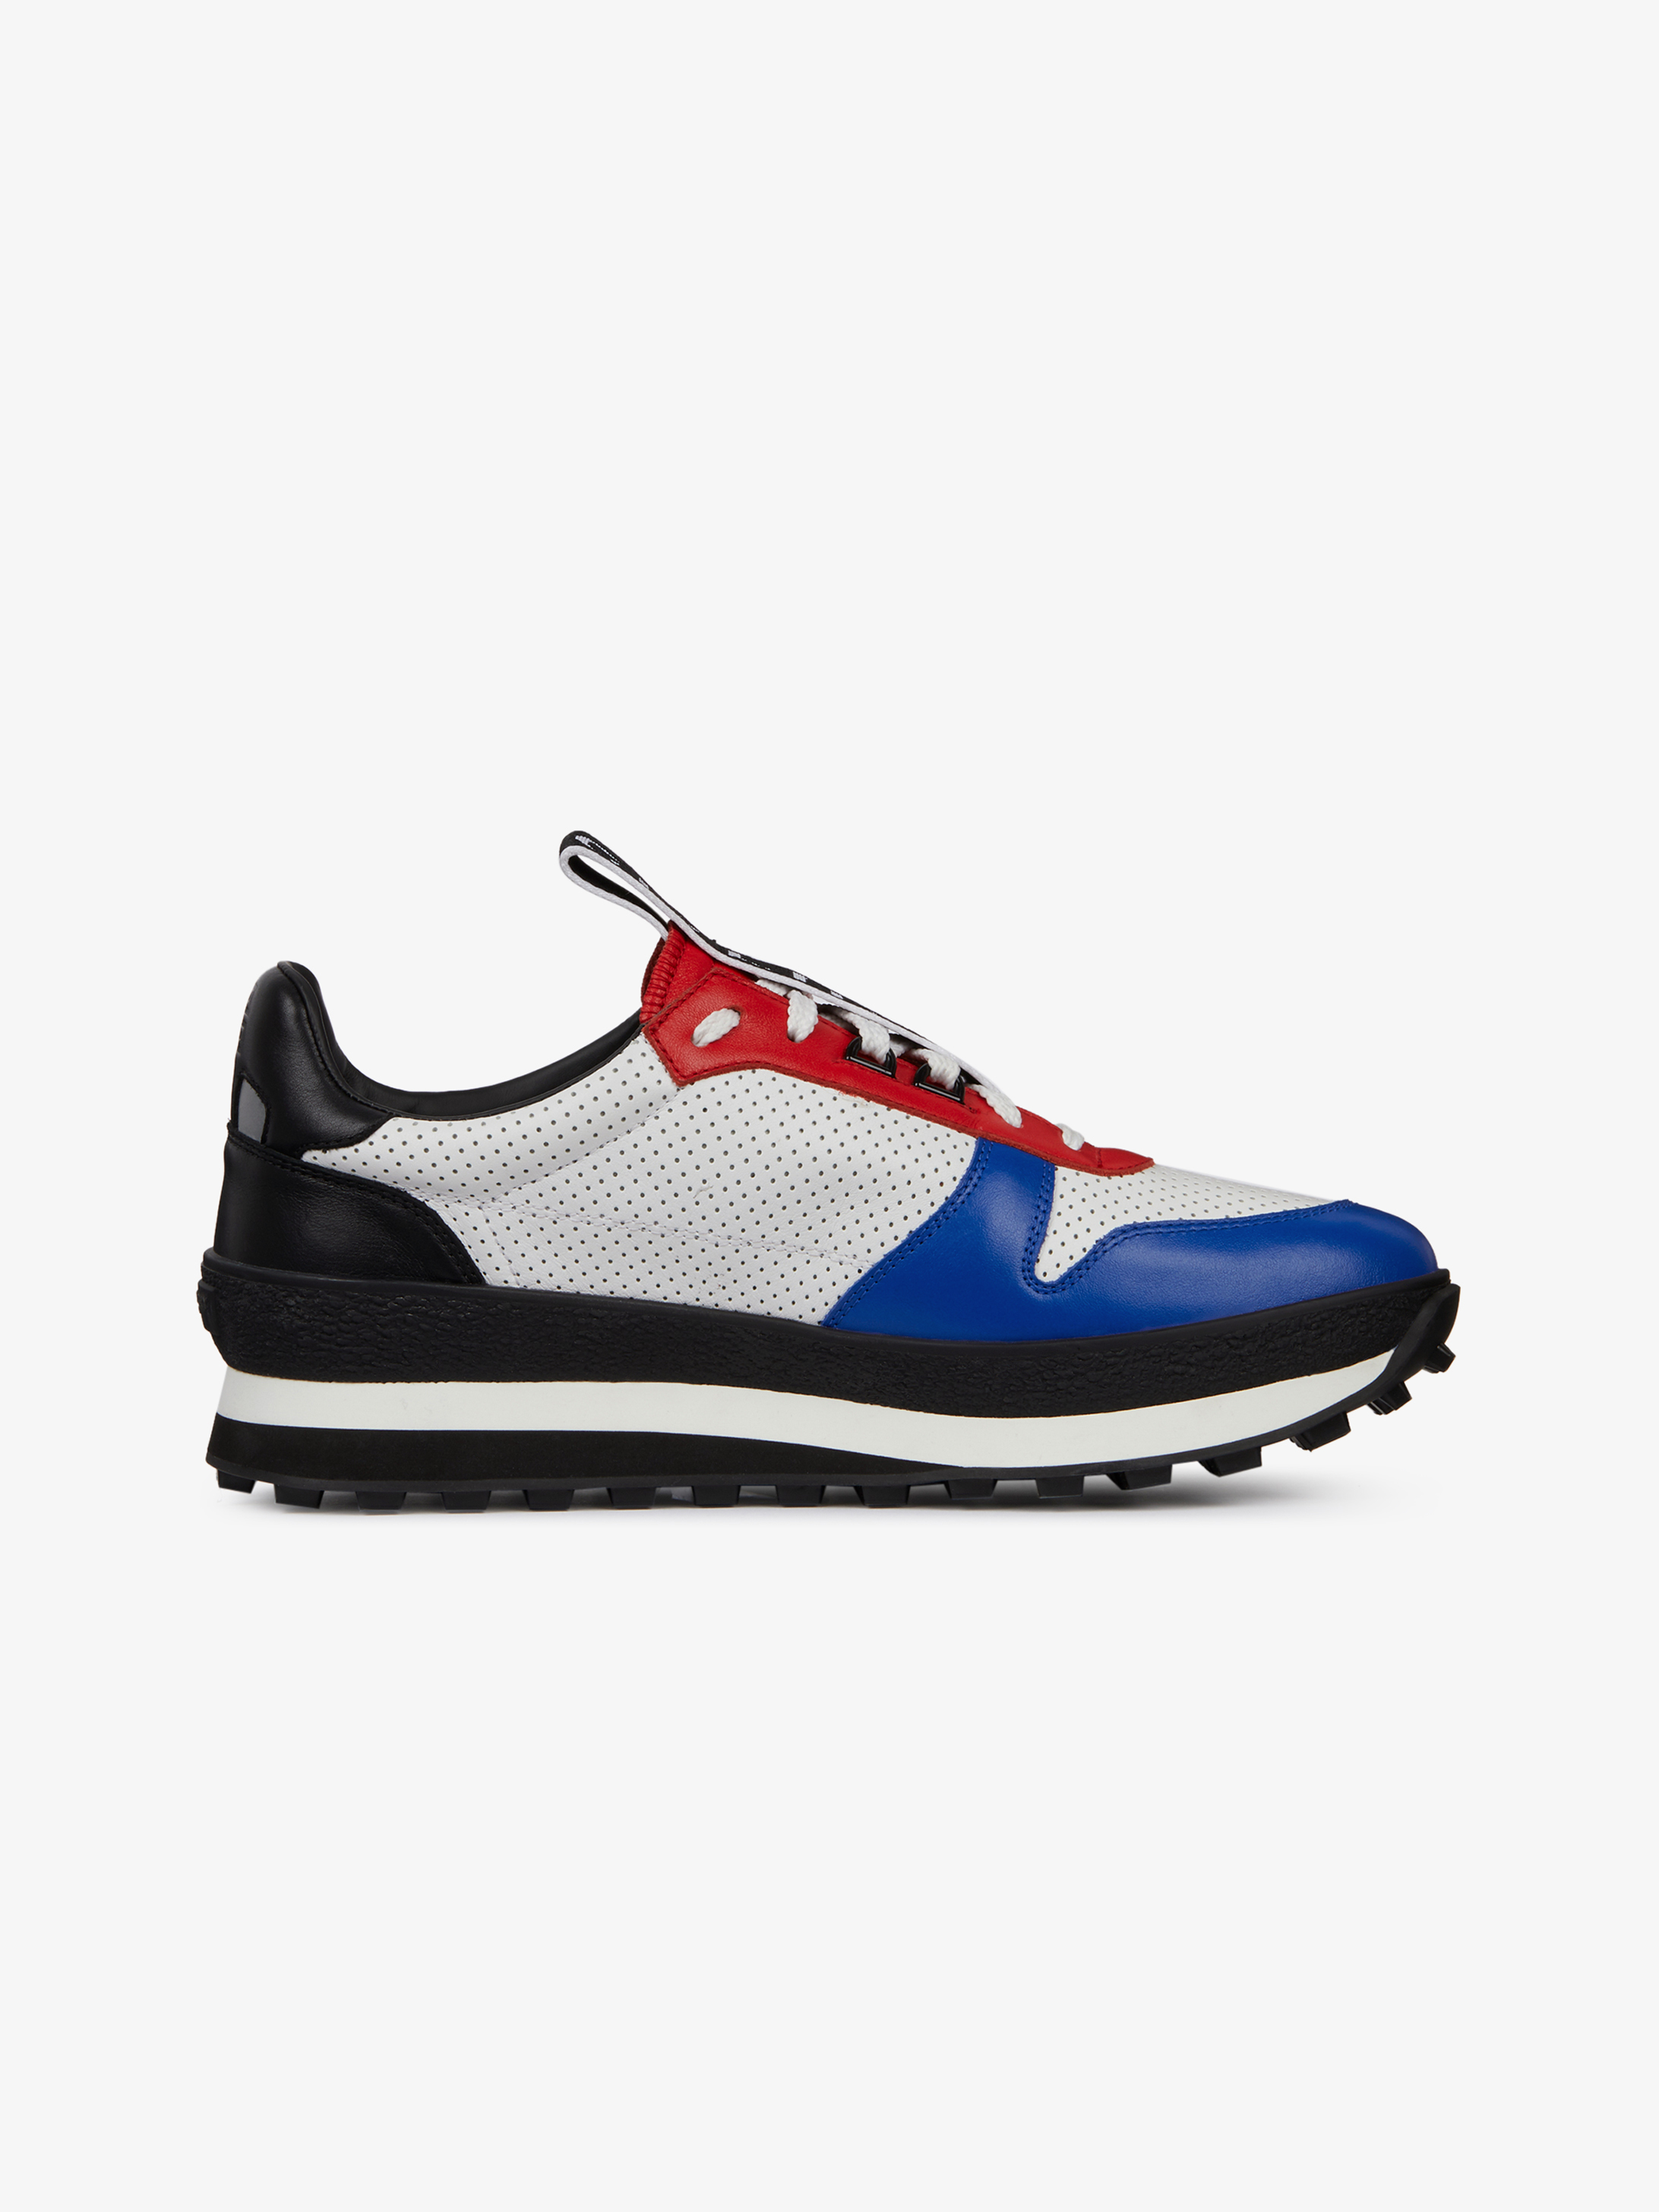 GIVENCHY runner sneakers in leather and nylon